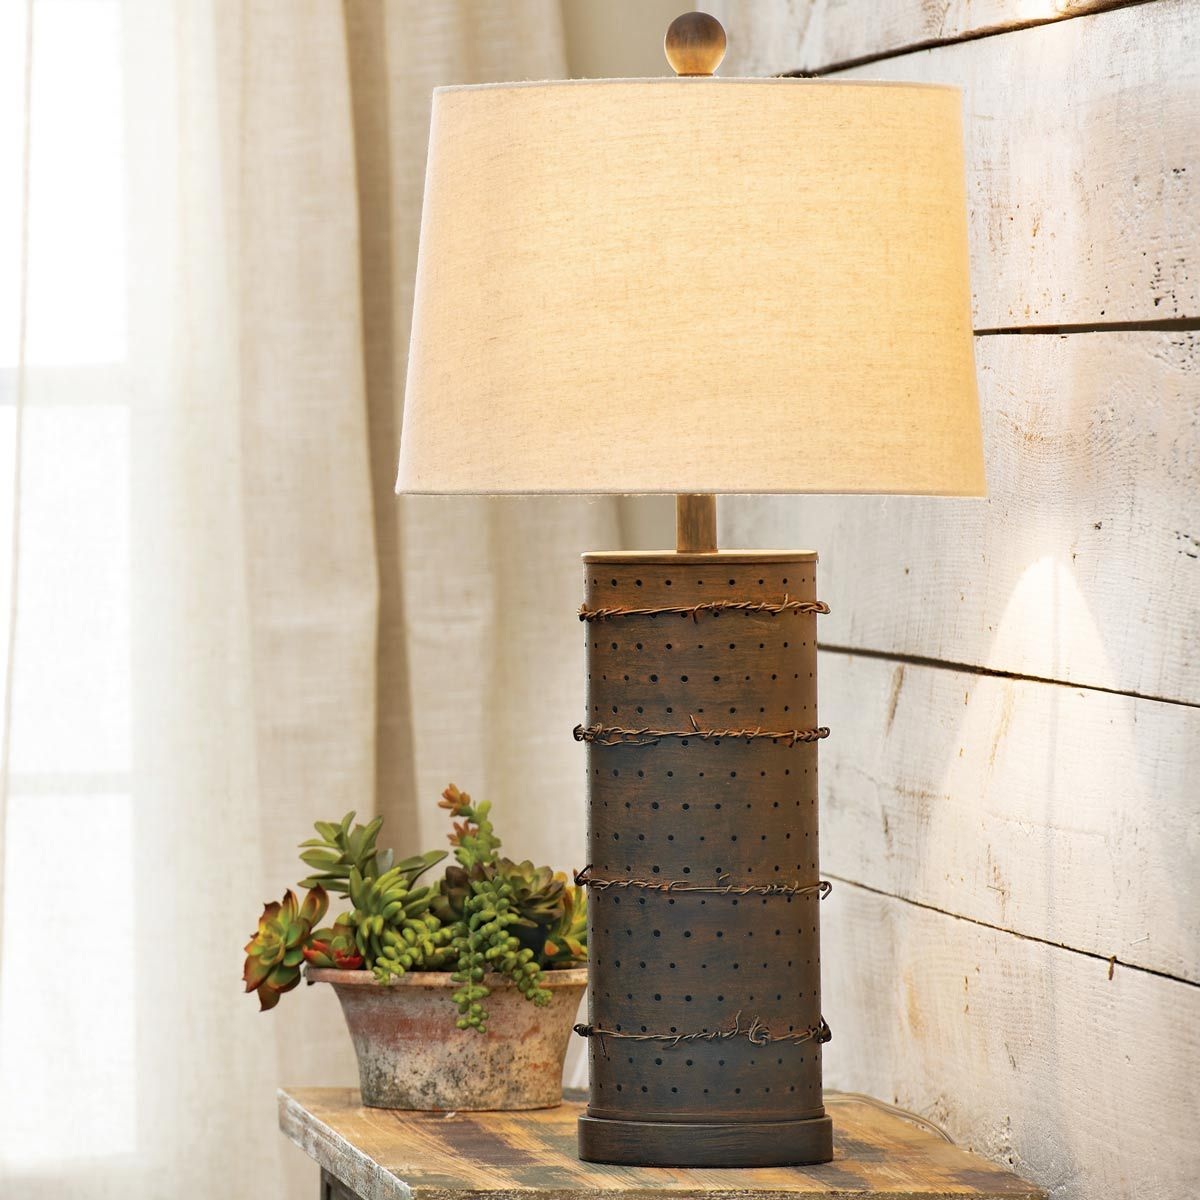 Stupendous Rustic Lamps Rusted Barbed Wire Table Lamp With Nightlight Wiring Database Obenzyuccorg